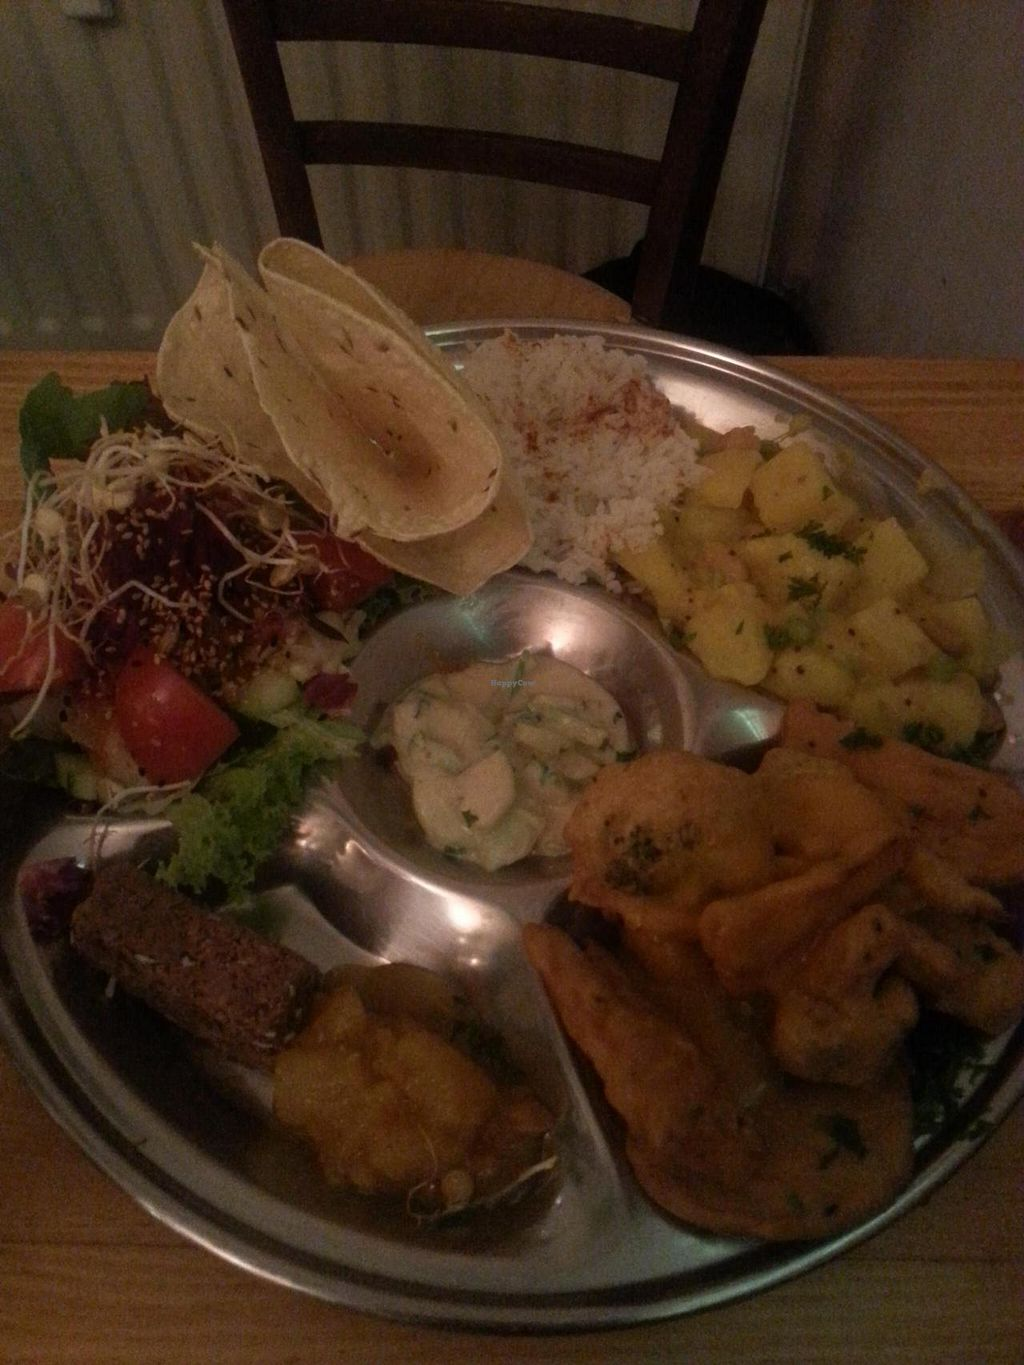 """Photo of Goura Pakora  by <a href=""""/members/profile/coi"""">coi</a> <br/>One of the big plates <br/> August 18, 2014  - <a href='/contact/abuse/image/39145/77358'>Report</a>"""